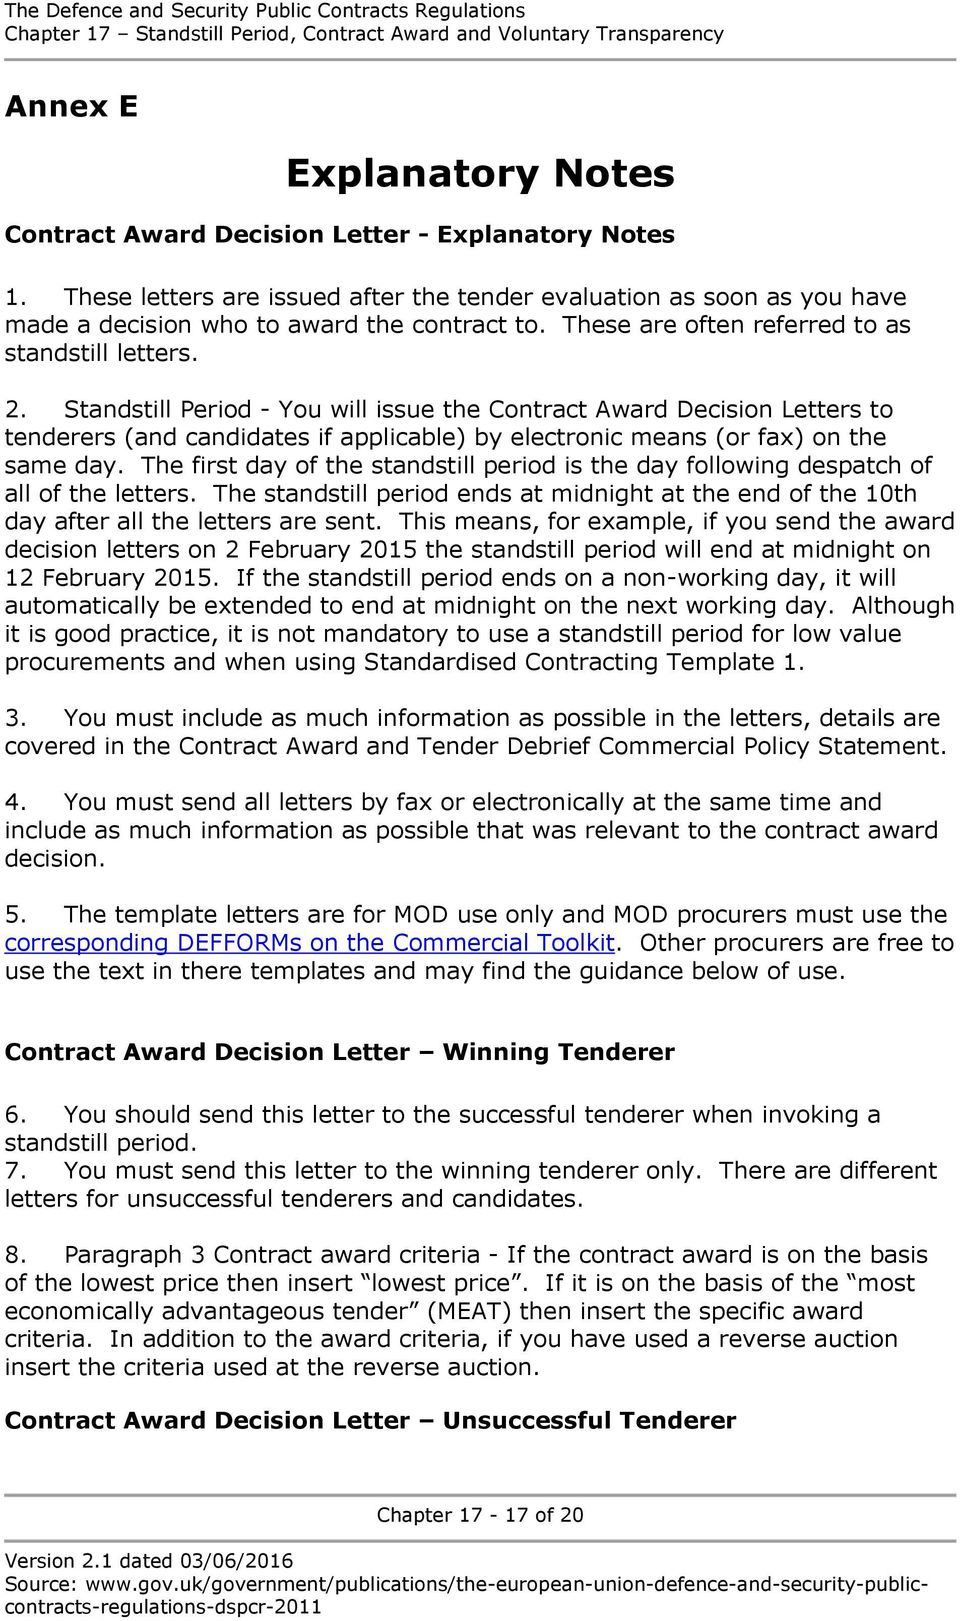 standstill period you will issue the contract award decision letters to tenderers and candidates